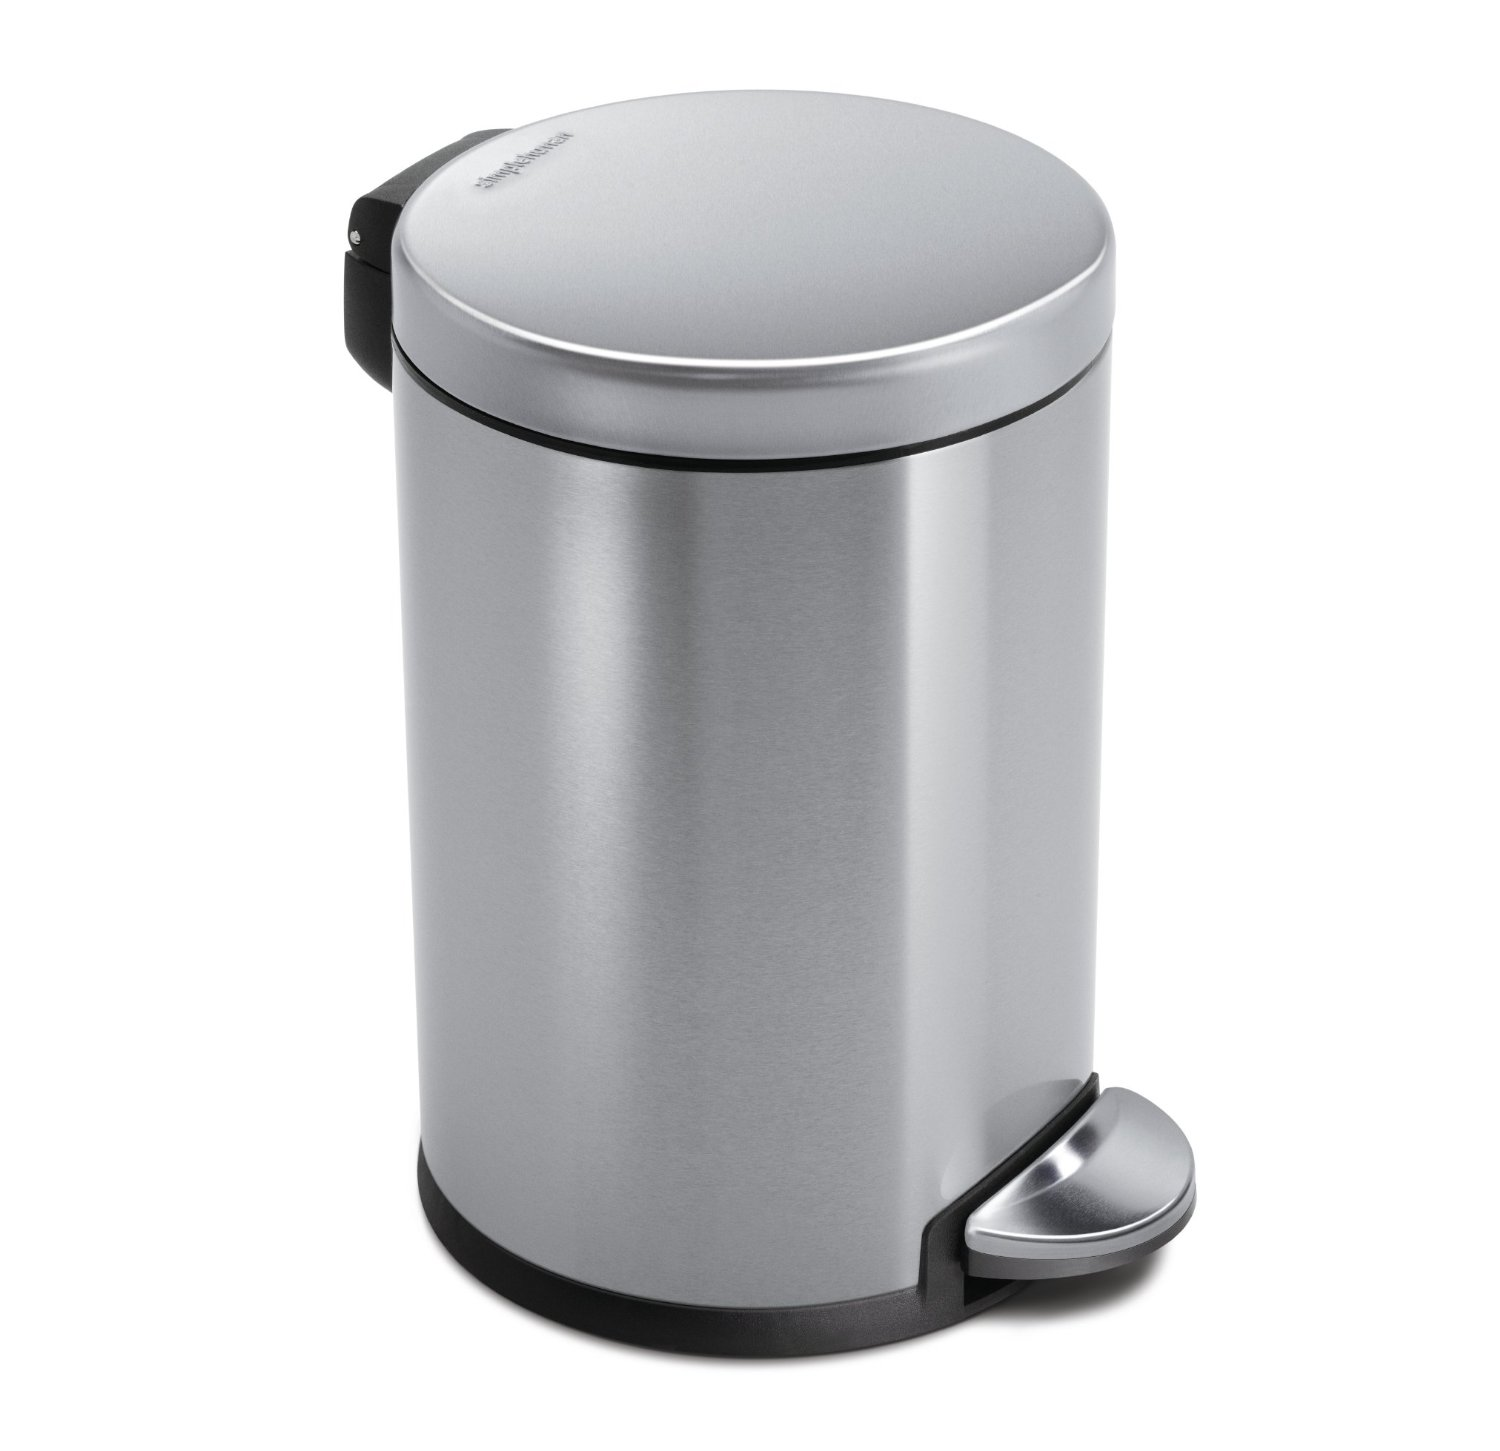 kitchen trash bin copper knobs for cabinets best can reviews of 2019 at topproducts com simplehuman 4 5 l 1 2 gal mini round step stainless steel available sink